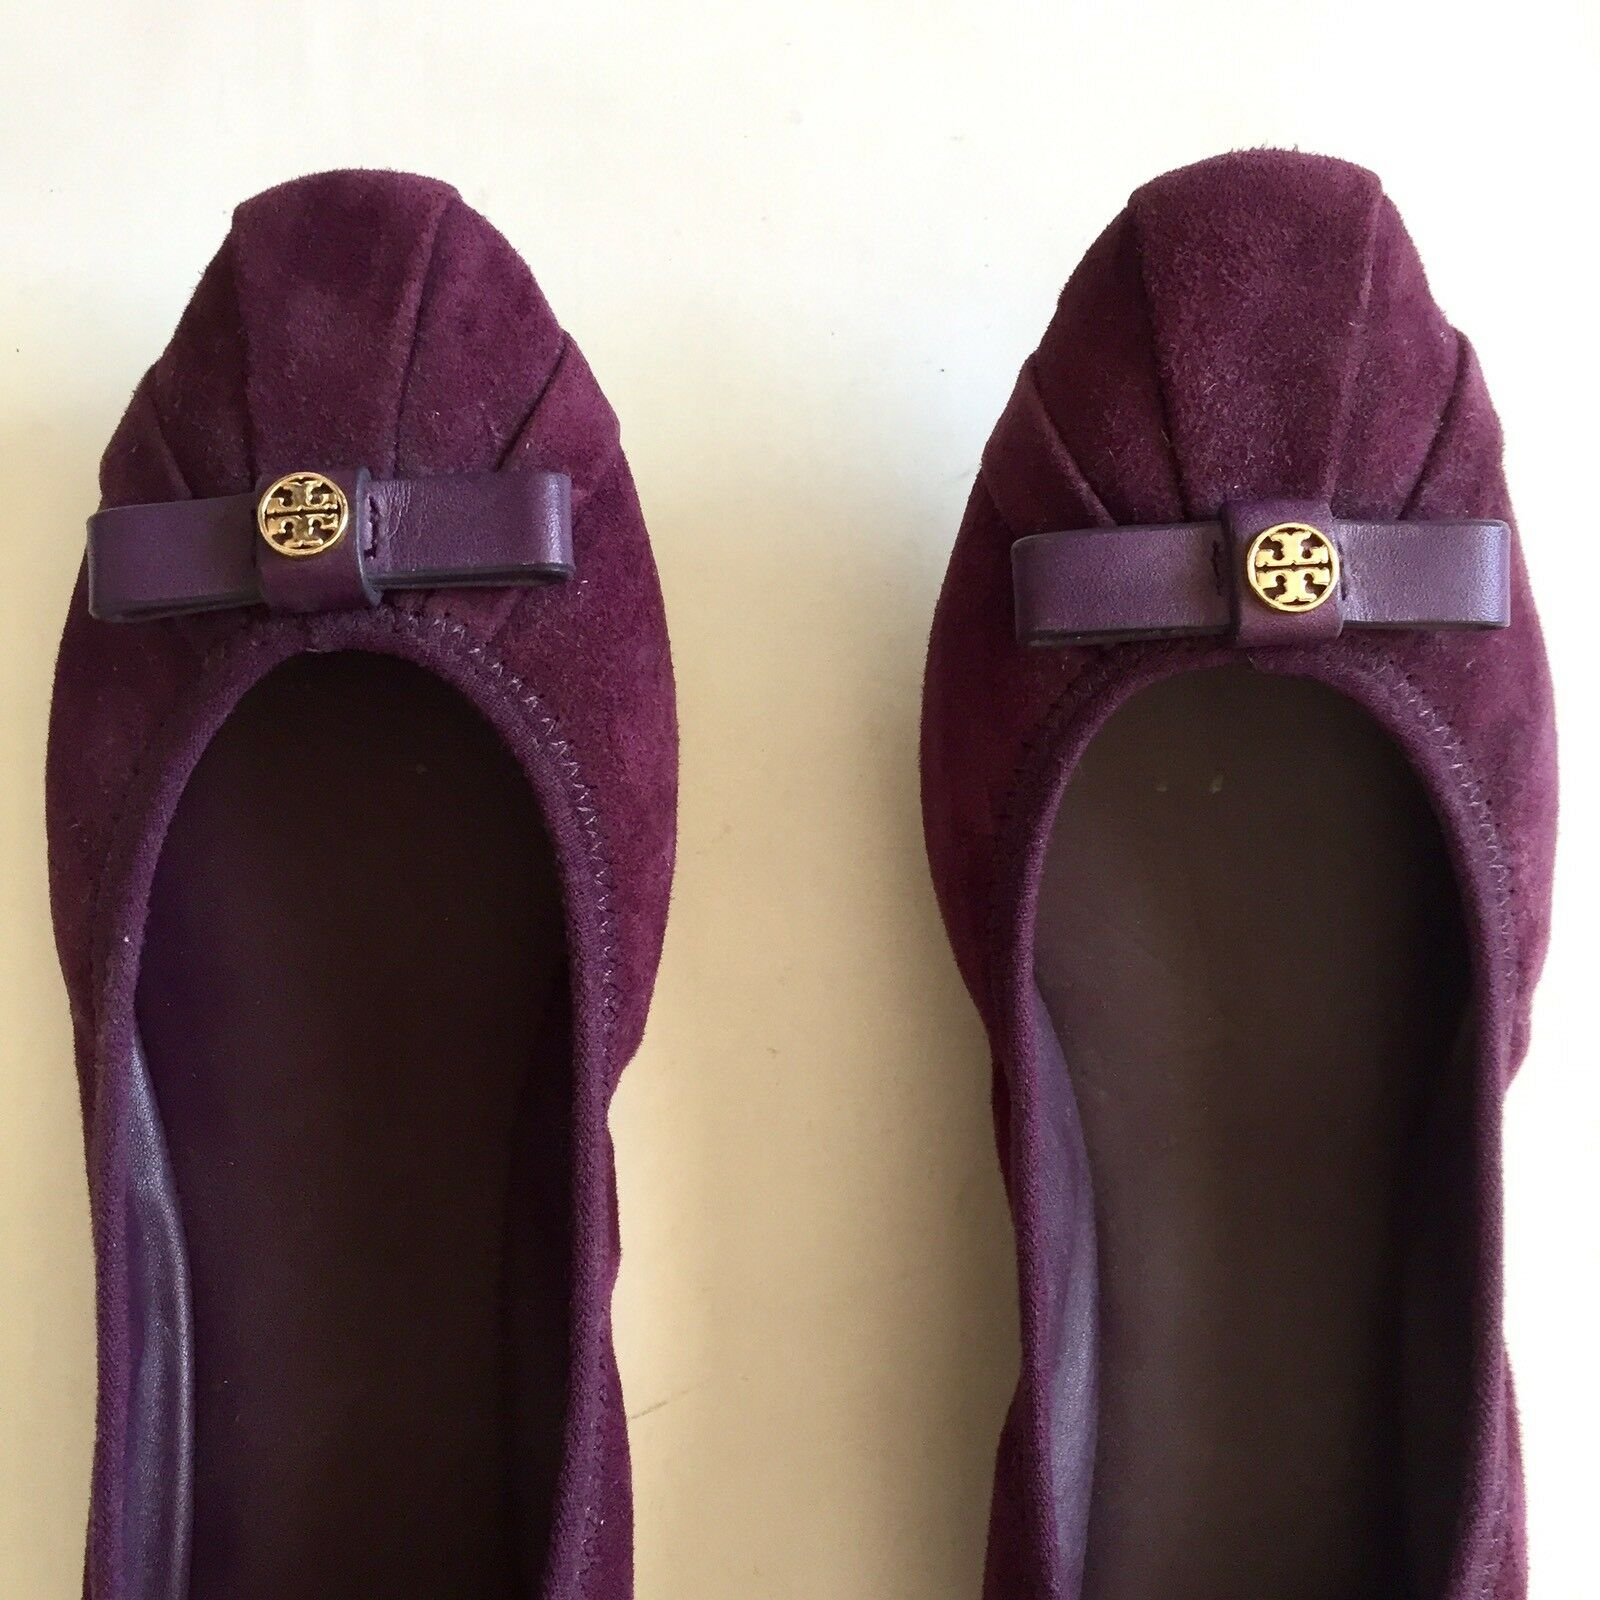 Tory Burch Womens Purple Suede Suede Suede Leather Bow Ballet Flats shoes Size 7M Pleated faac13